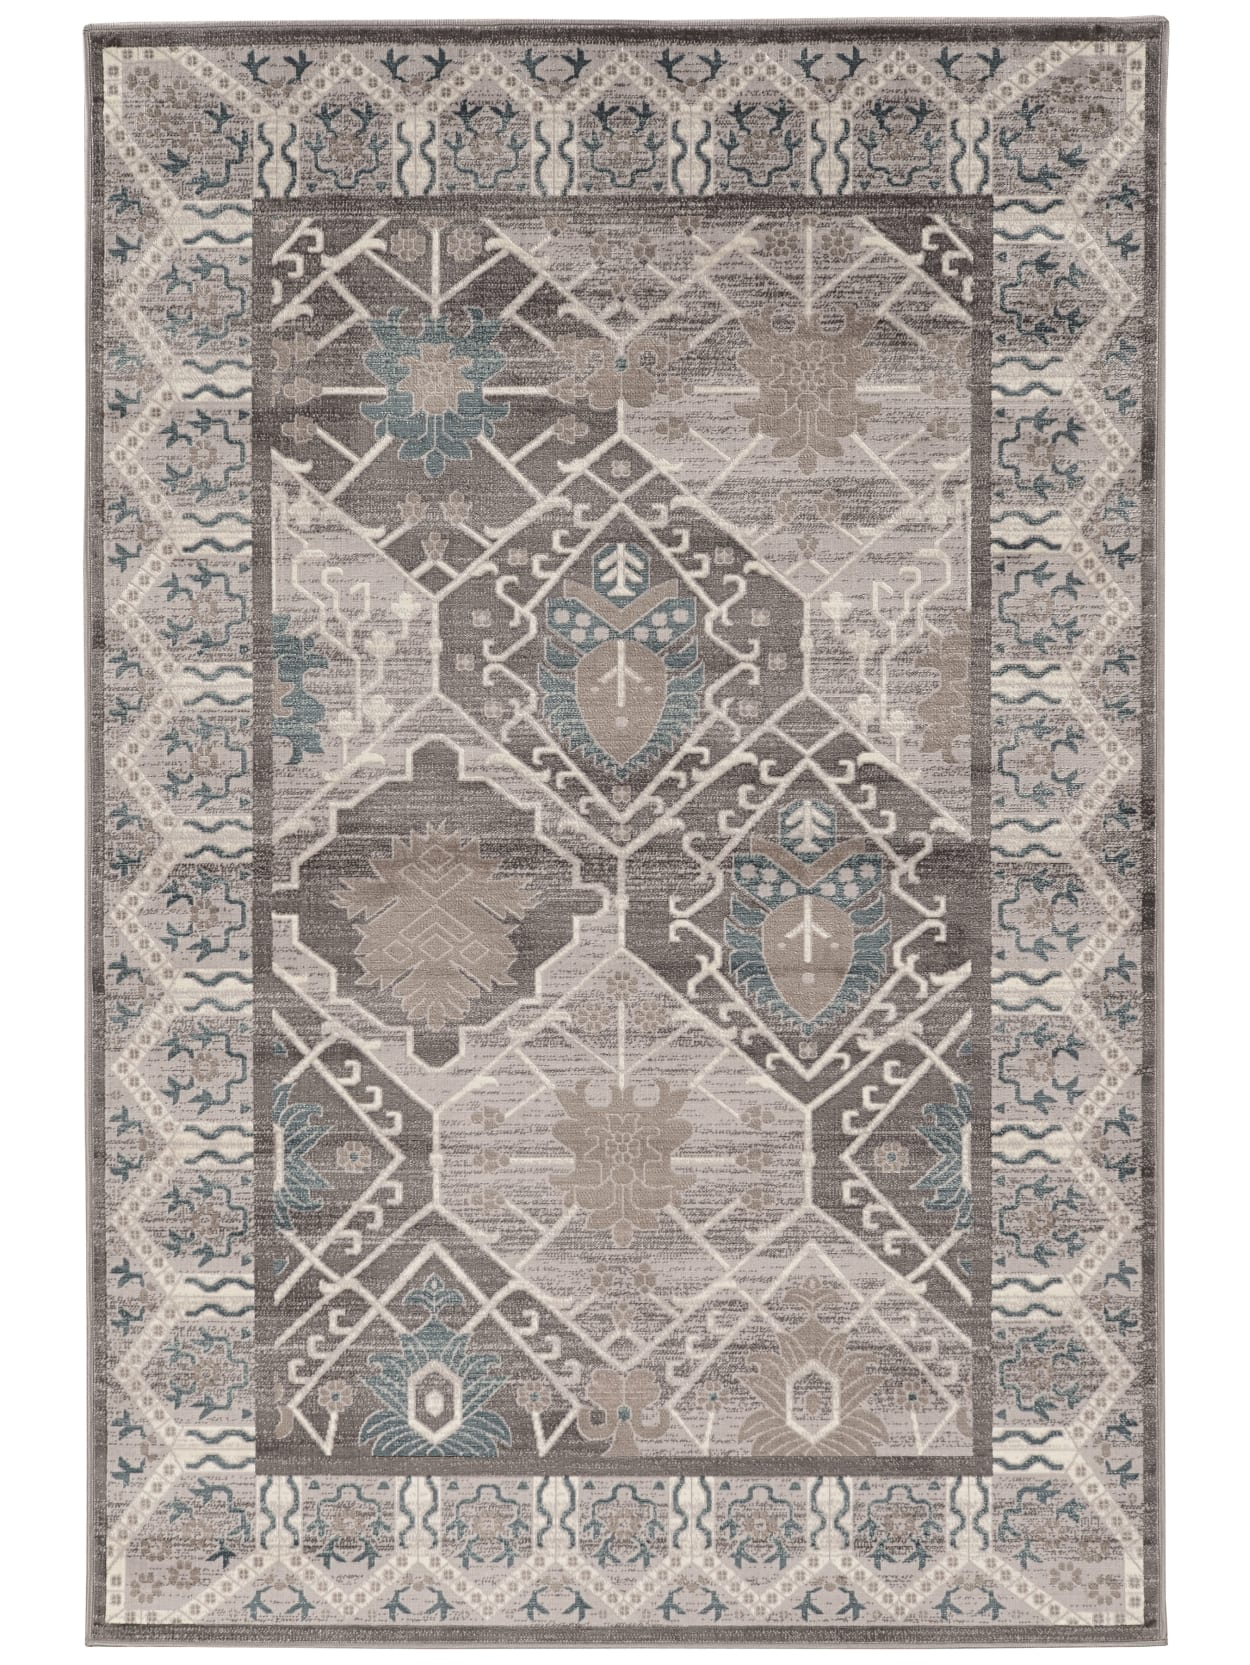 Linon Paramount Rug Belouch 7 5x5 Grychar Office Depot